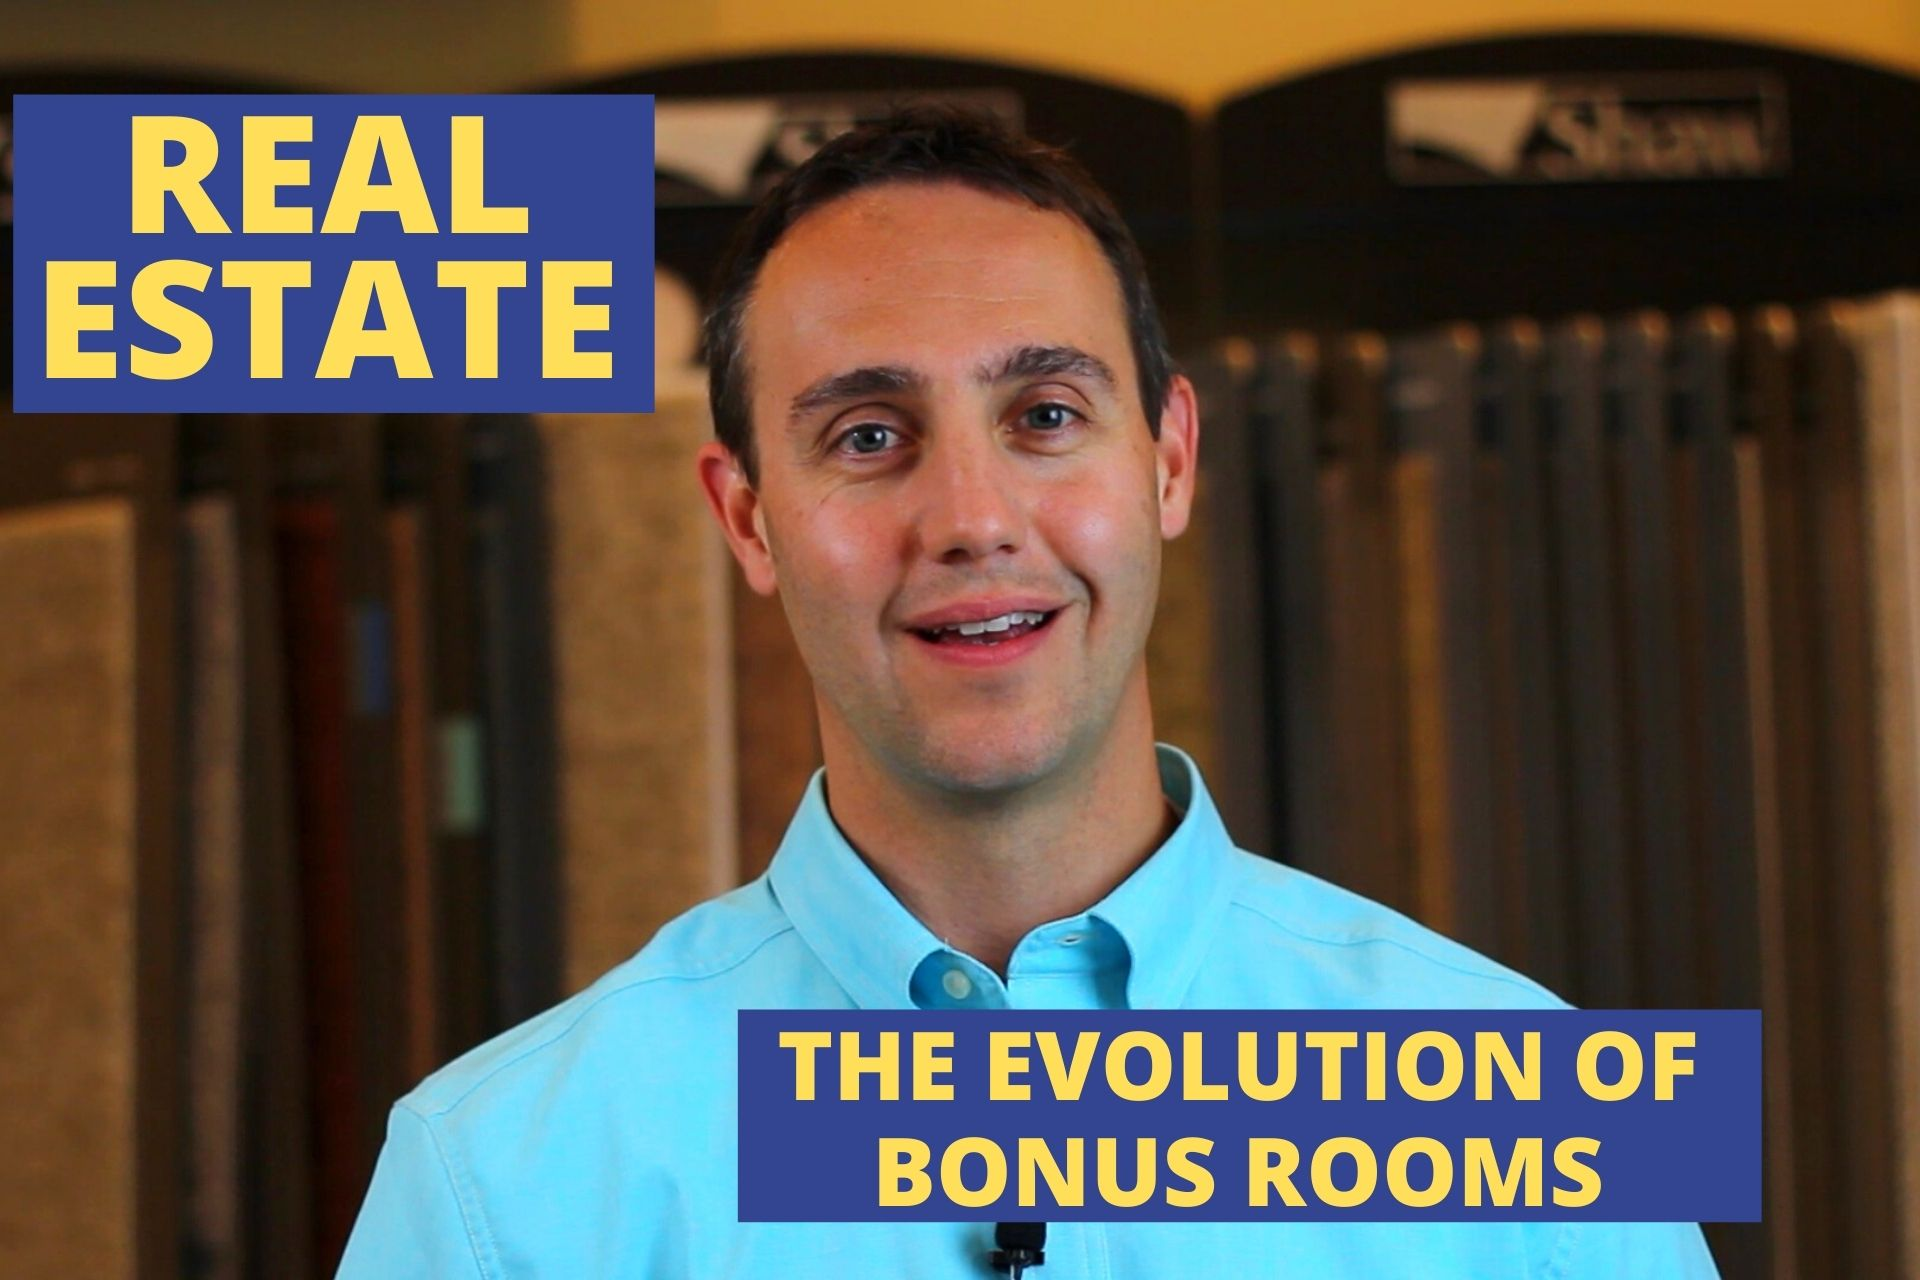 The evolution of bonus rooms